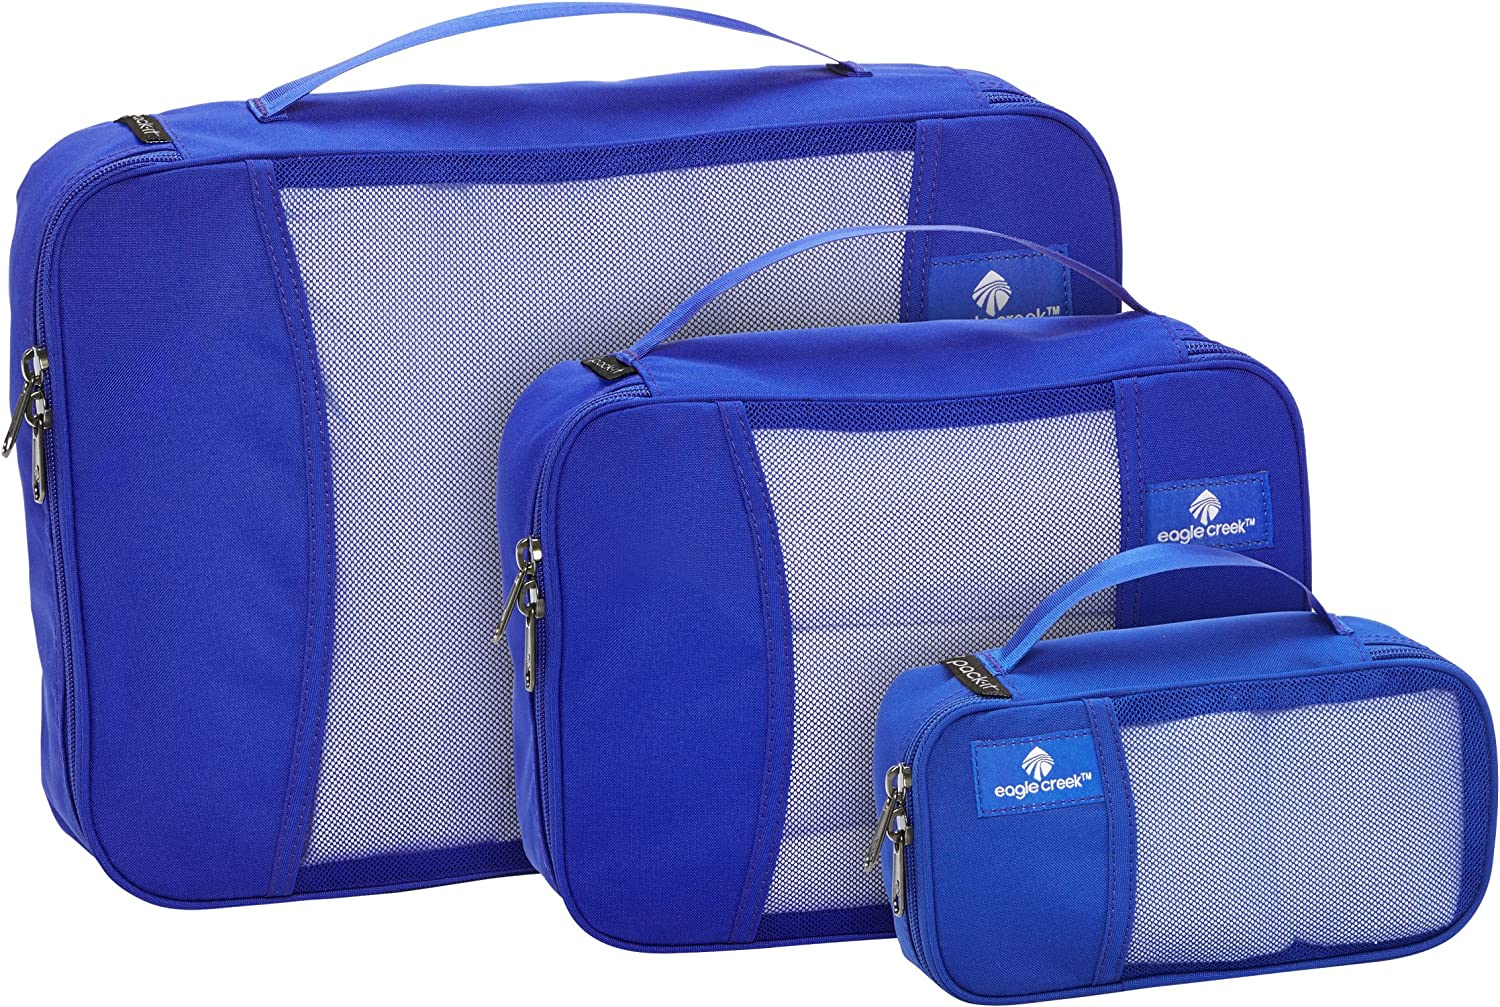   Eagle Creek Travel Gear Pack It, Blue Sea 3 Pack, One Size   Packing Organizers